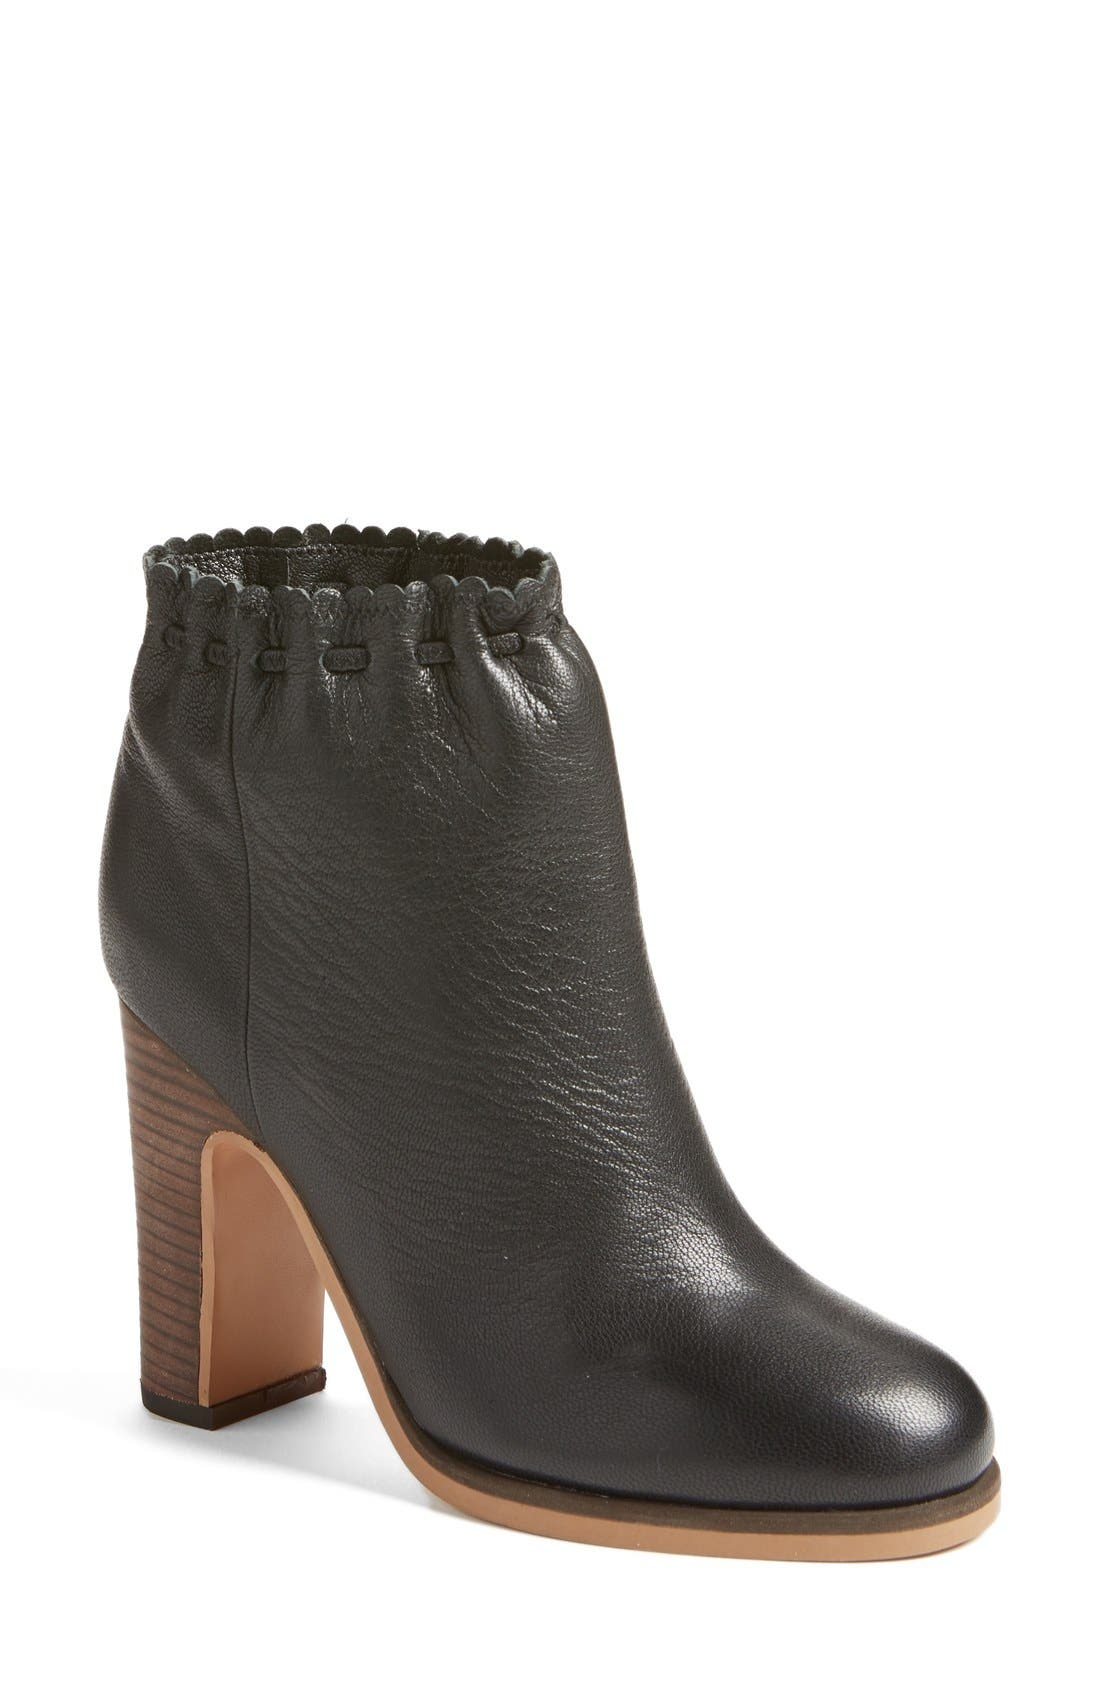 Alternate Image 1 Selected - See by Chloé 'Jane' Scalloped Bootie (Women)